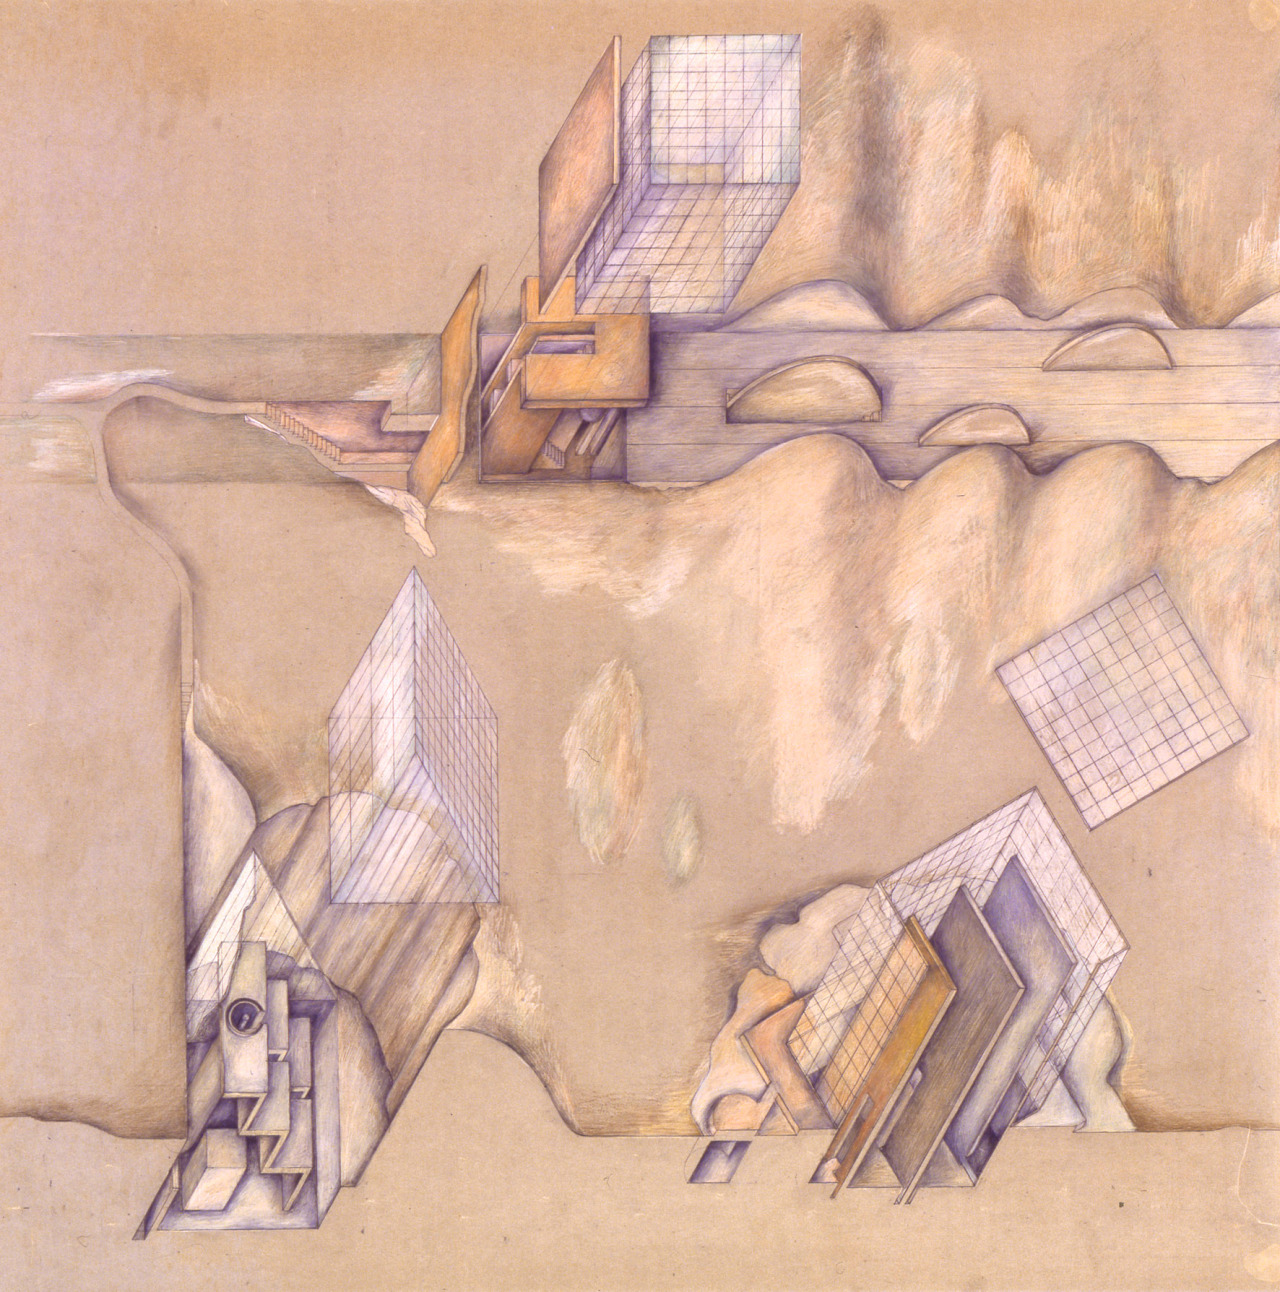 architectural-review:  Raimund Abraham, Triptych of 9 Houses, detail. Pencil & colouring pencil.